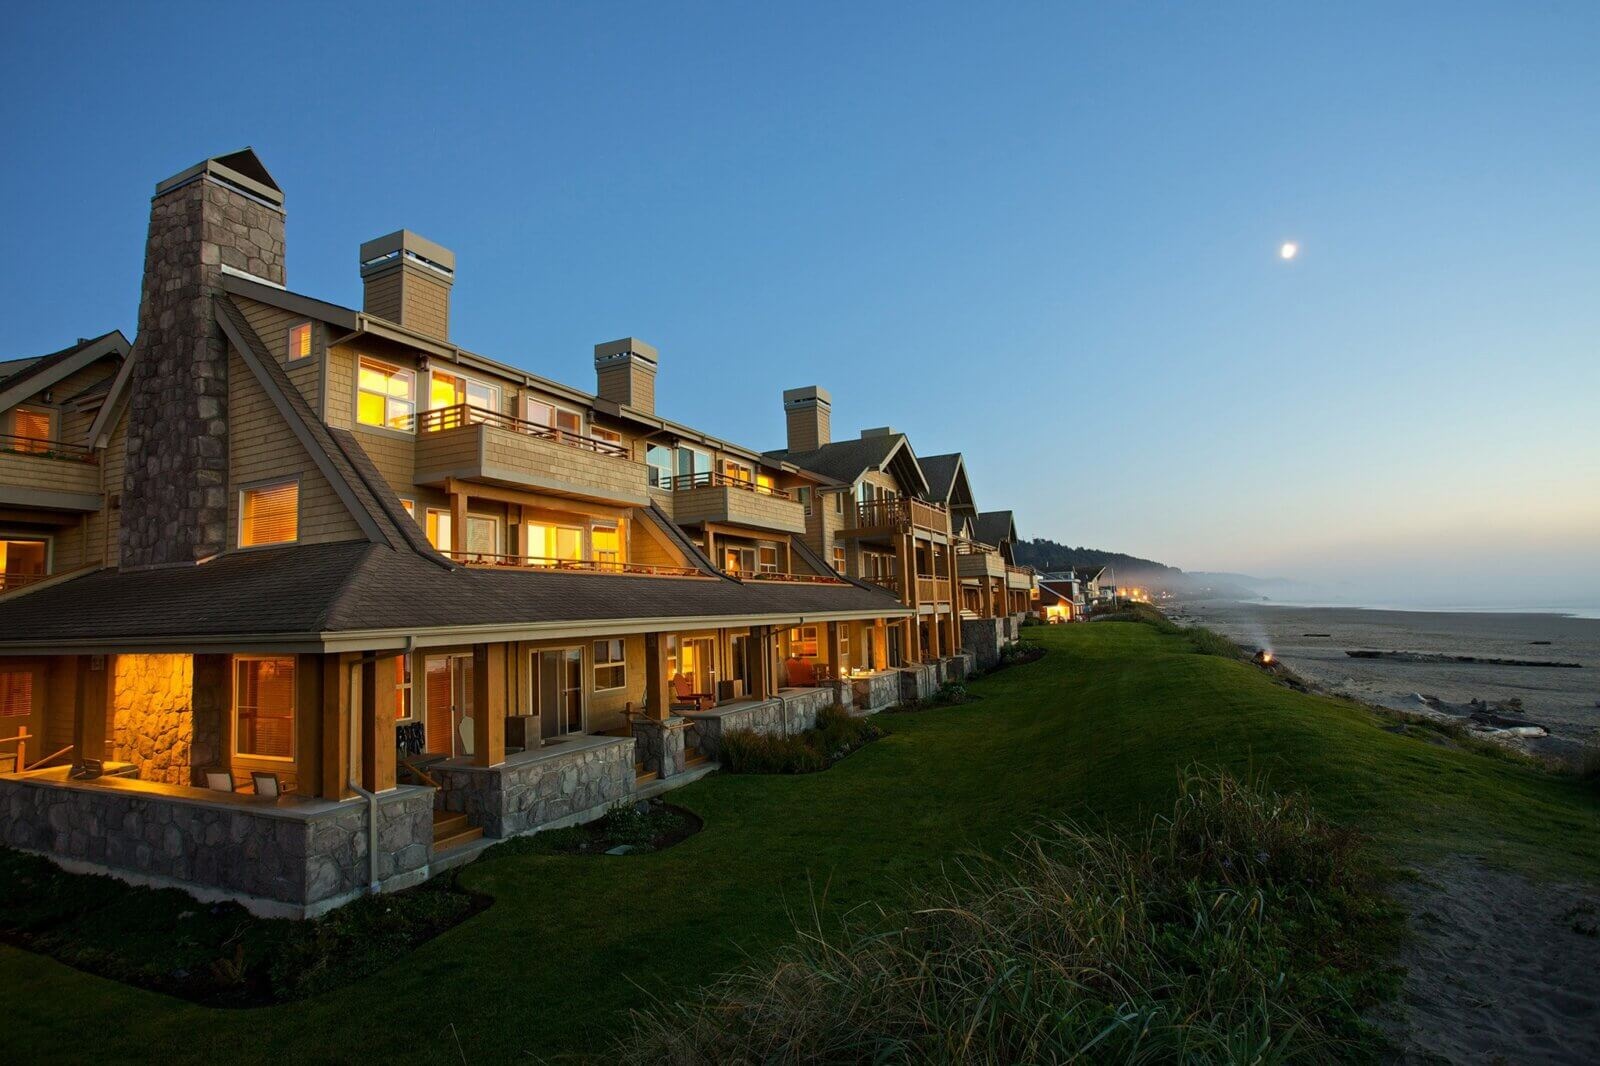 Moonlit Lodge in Cannon Beach, Oregon